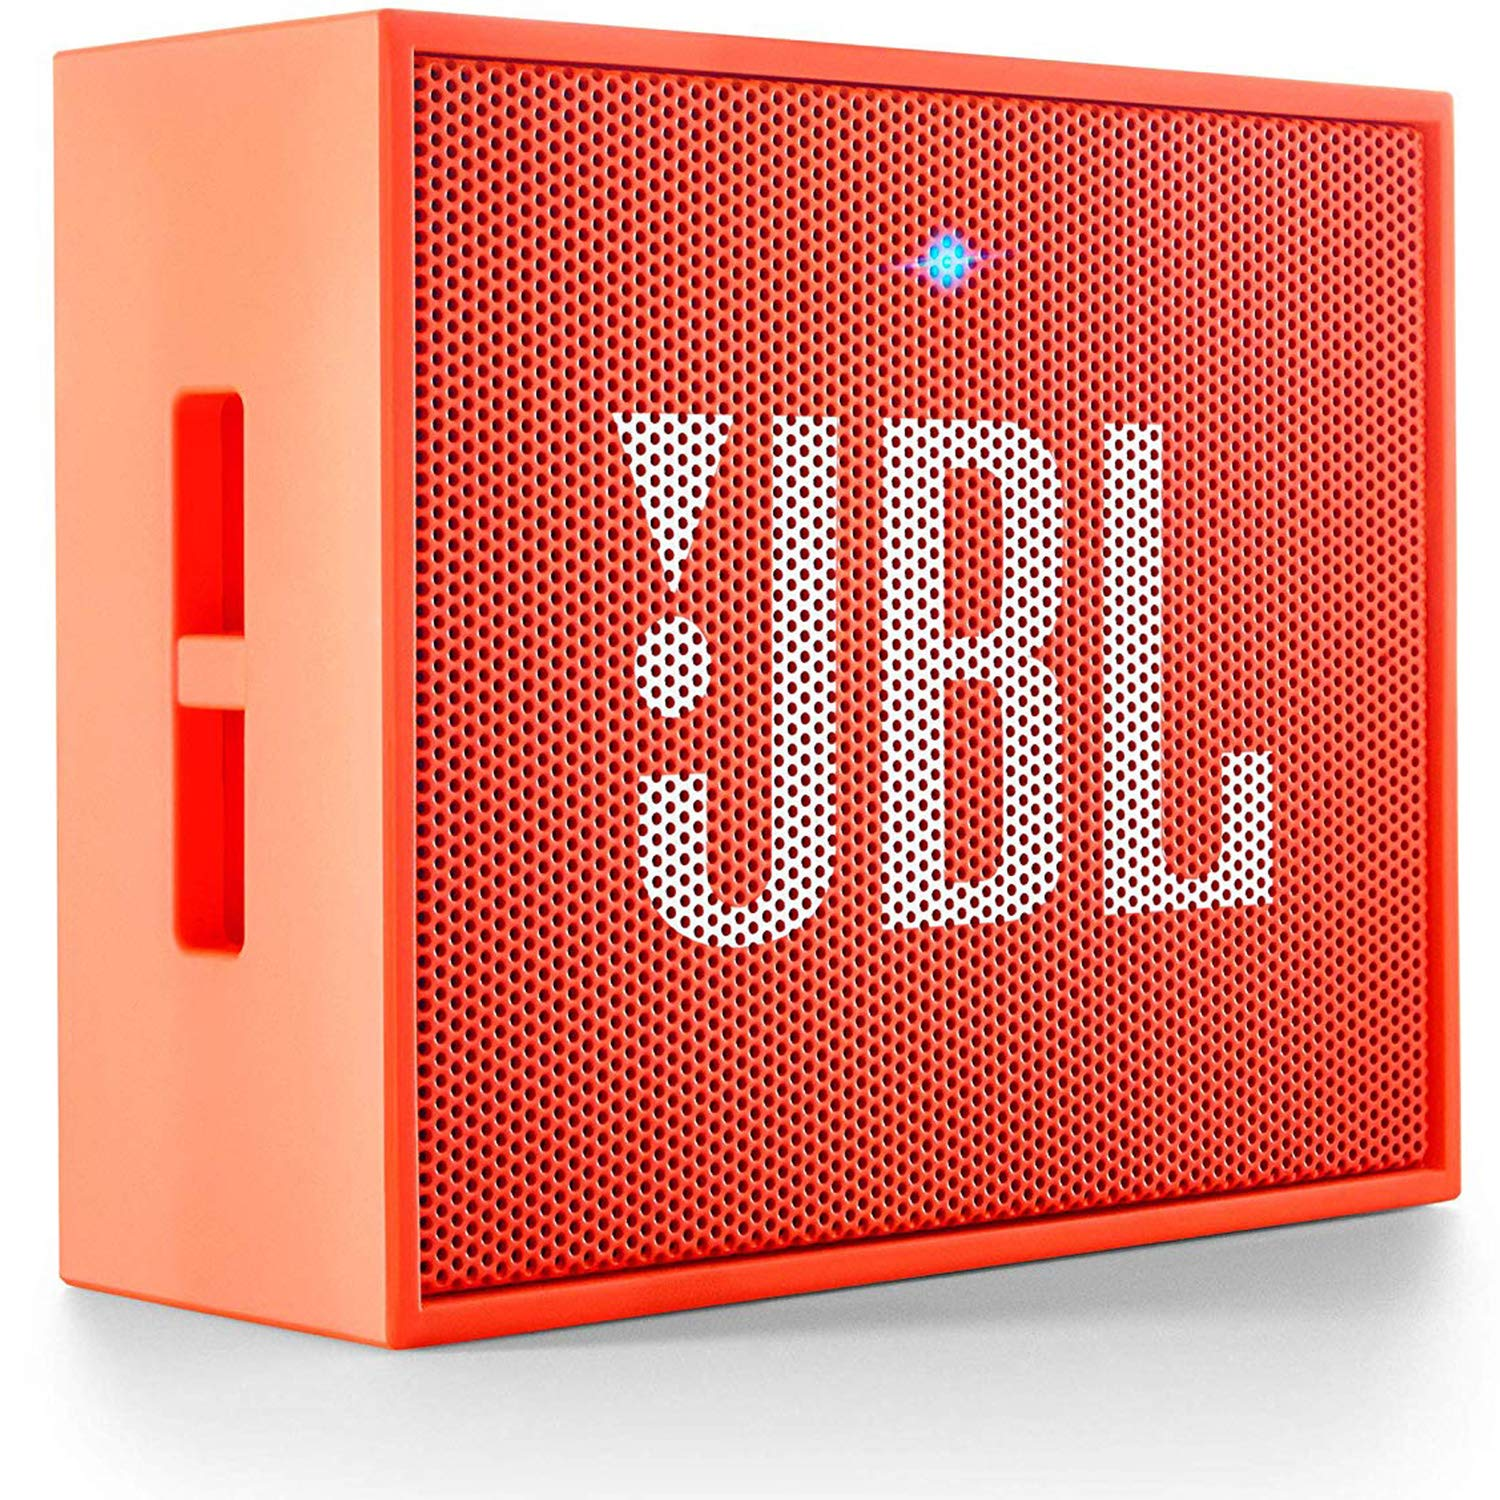 jbl bluetooth speaker orange